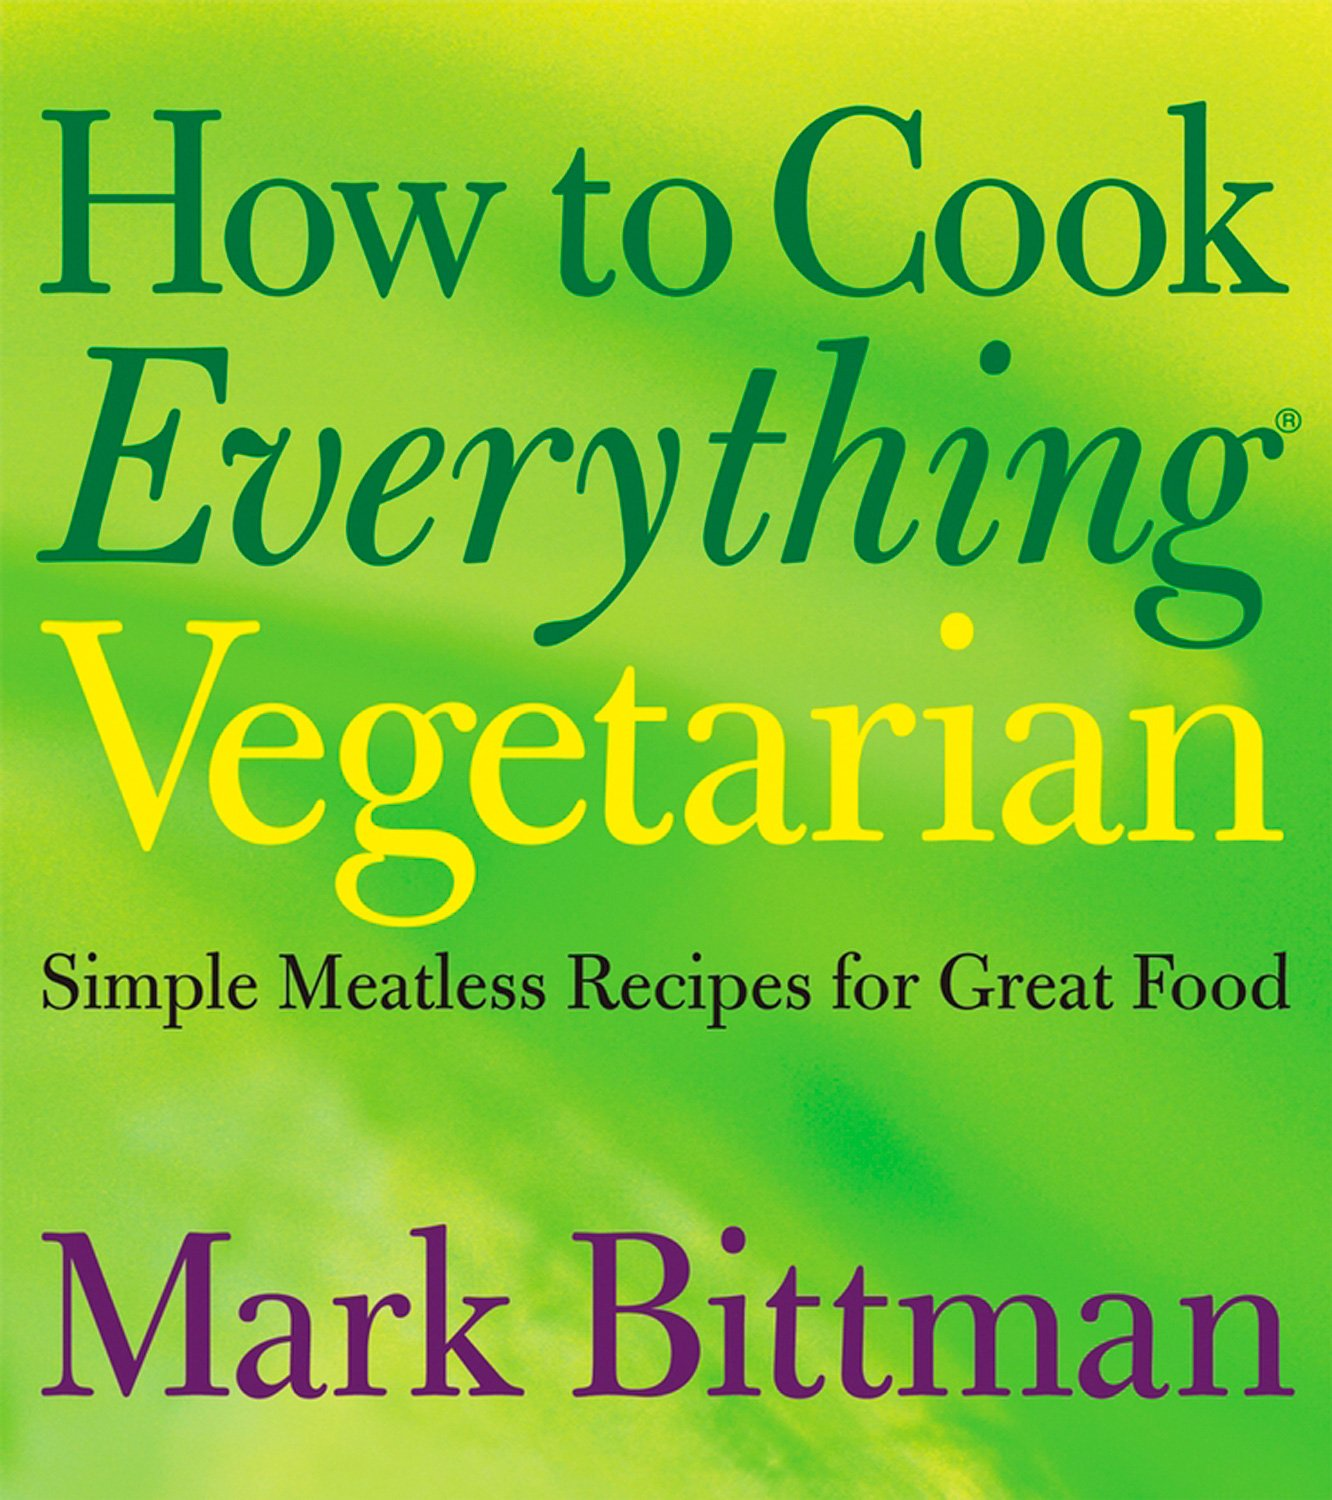 How to Cook Everything Vegetarian: Simple Meatless Recipes for Great Food pdf